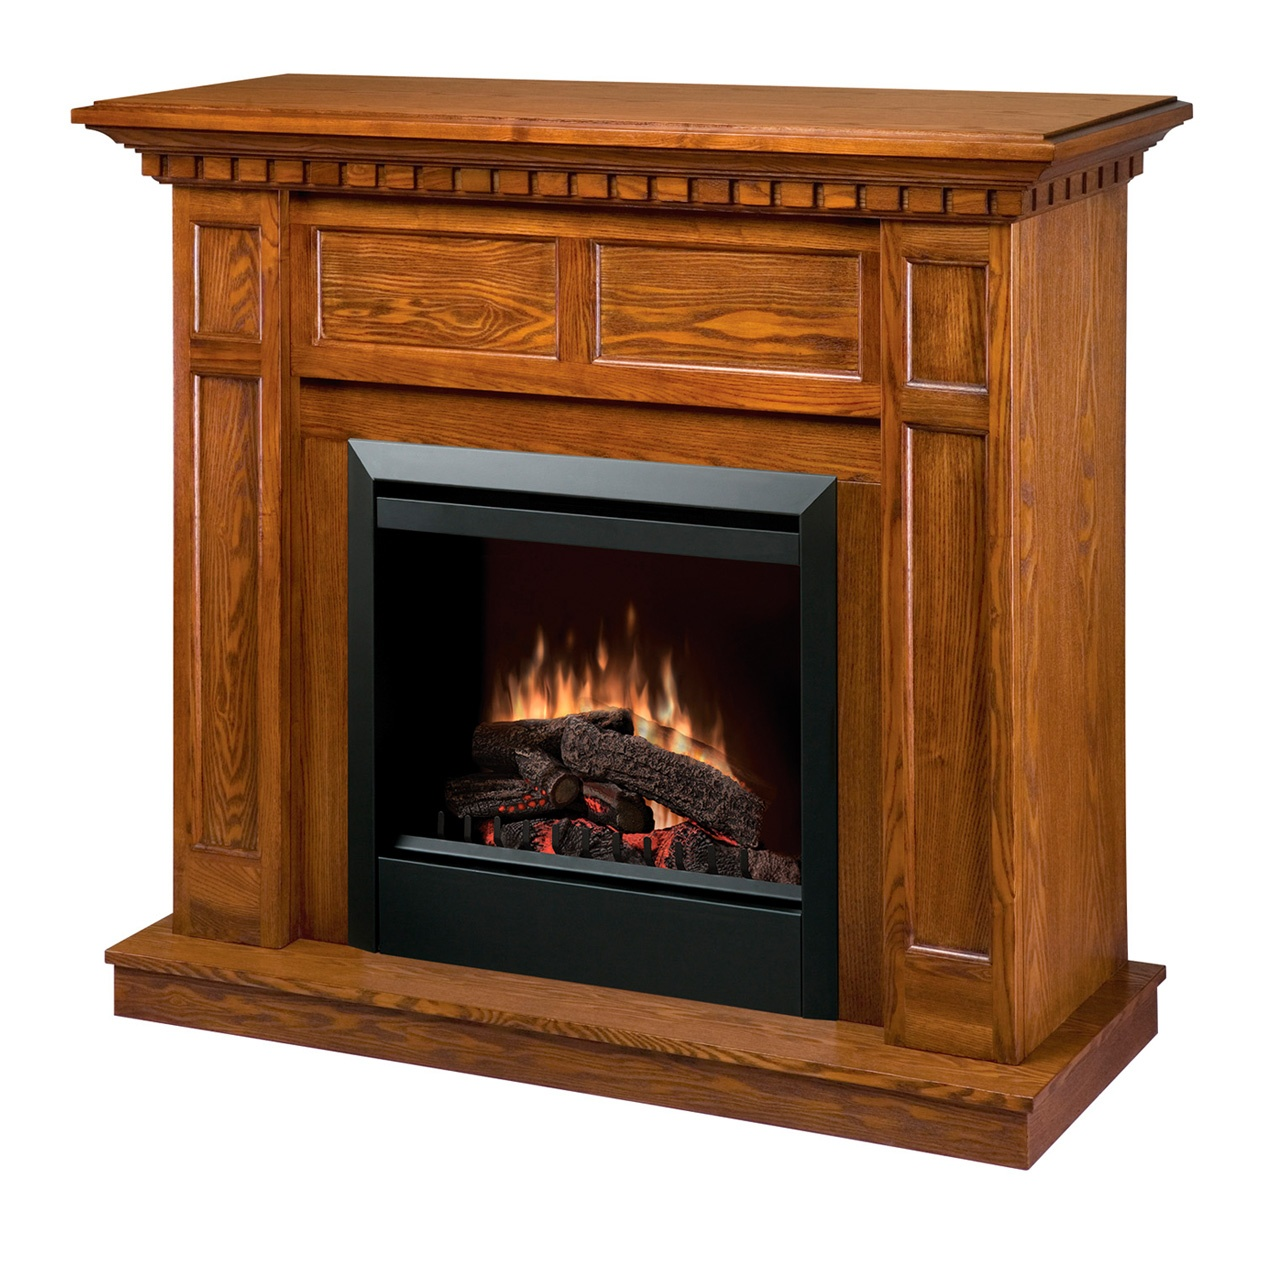 Dimplex Caprice Dfp4743o Electric Fireplace Wall Mantel Electric Fireplaces